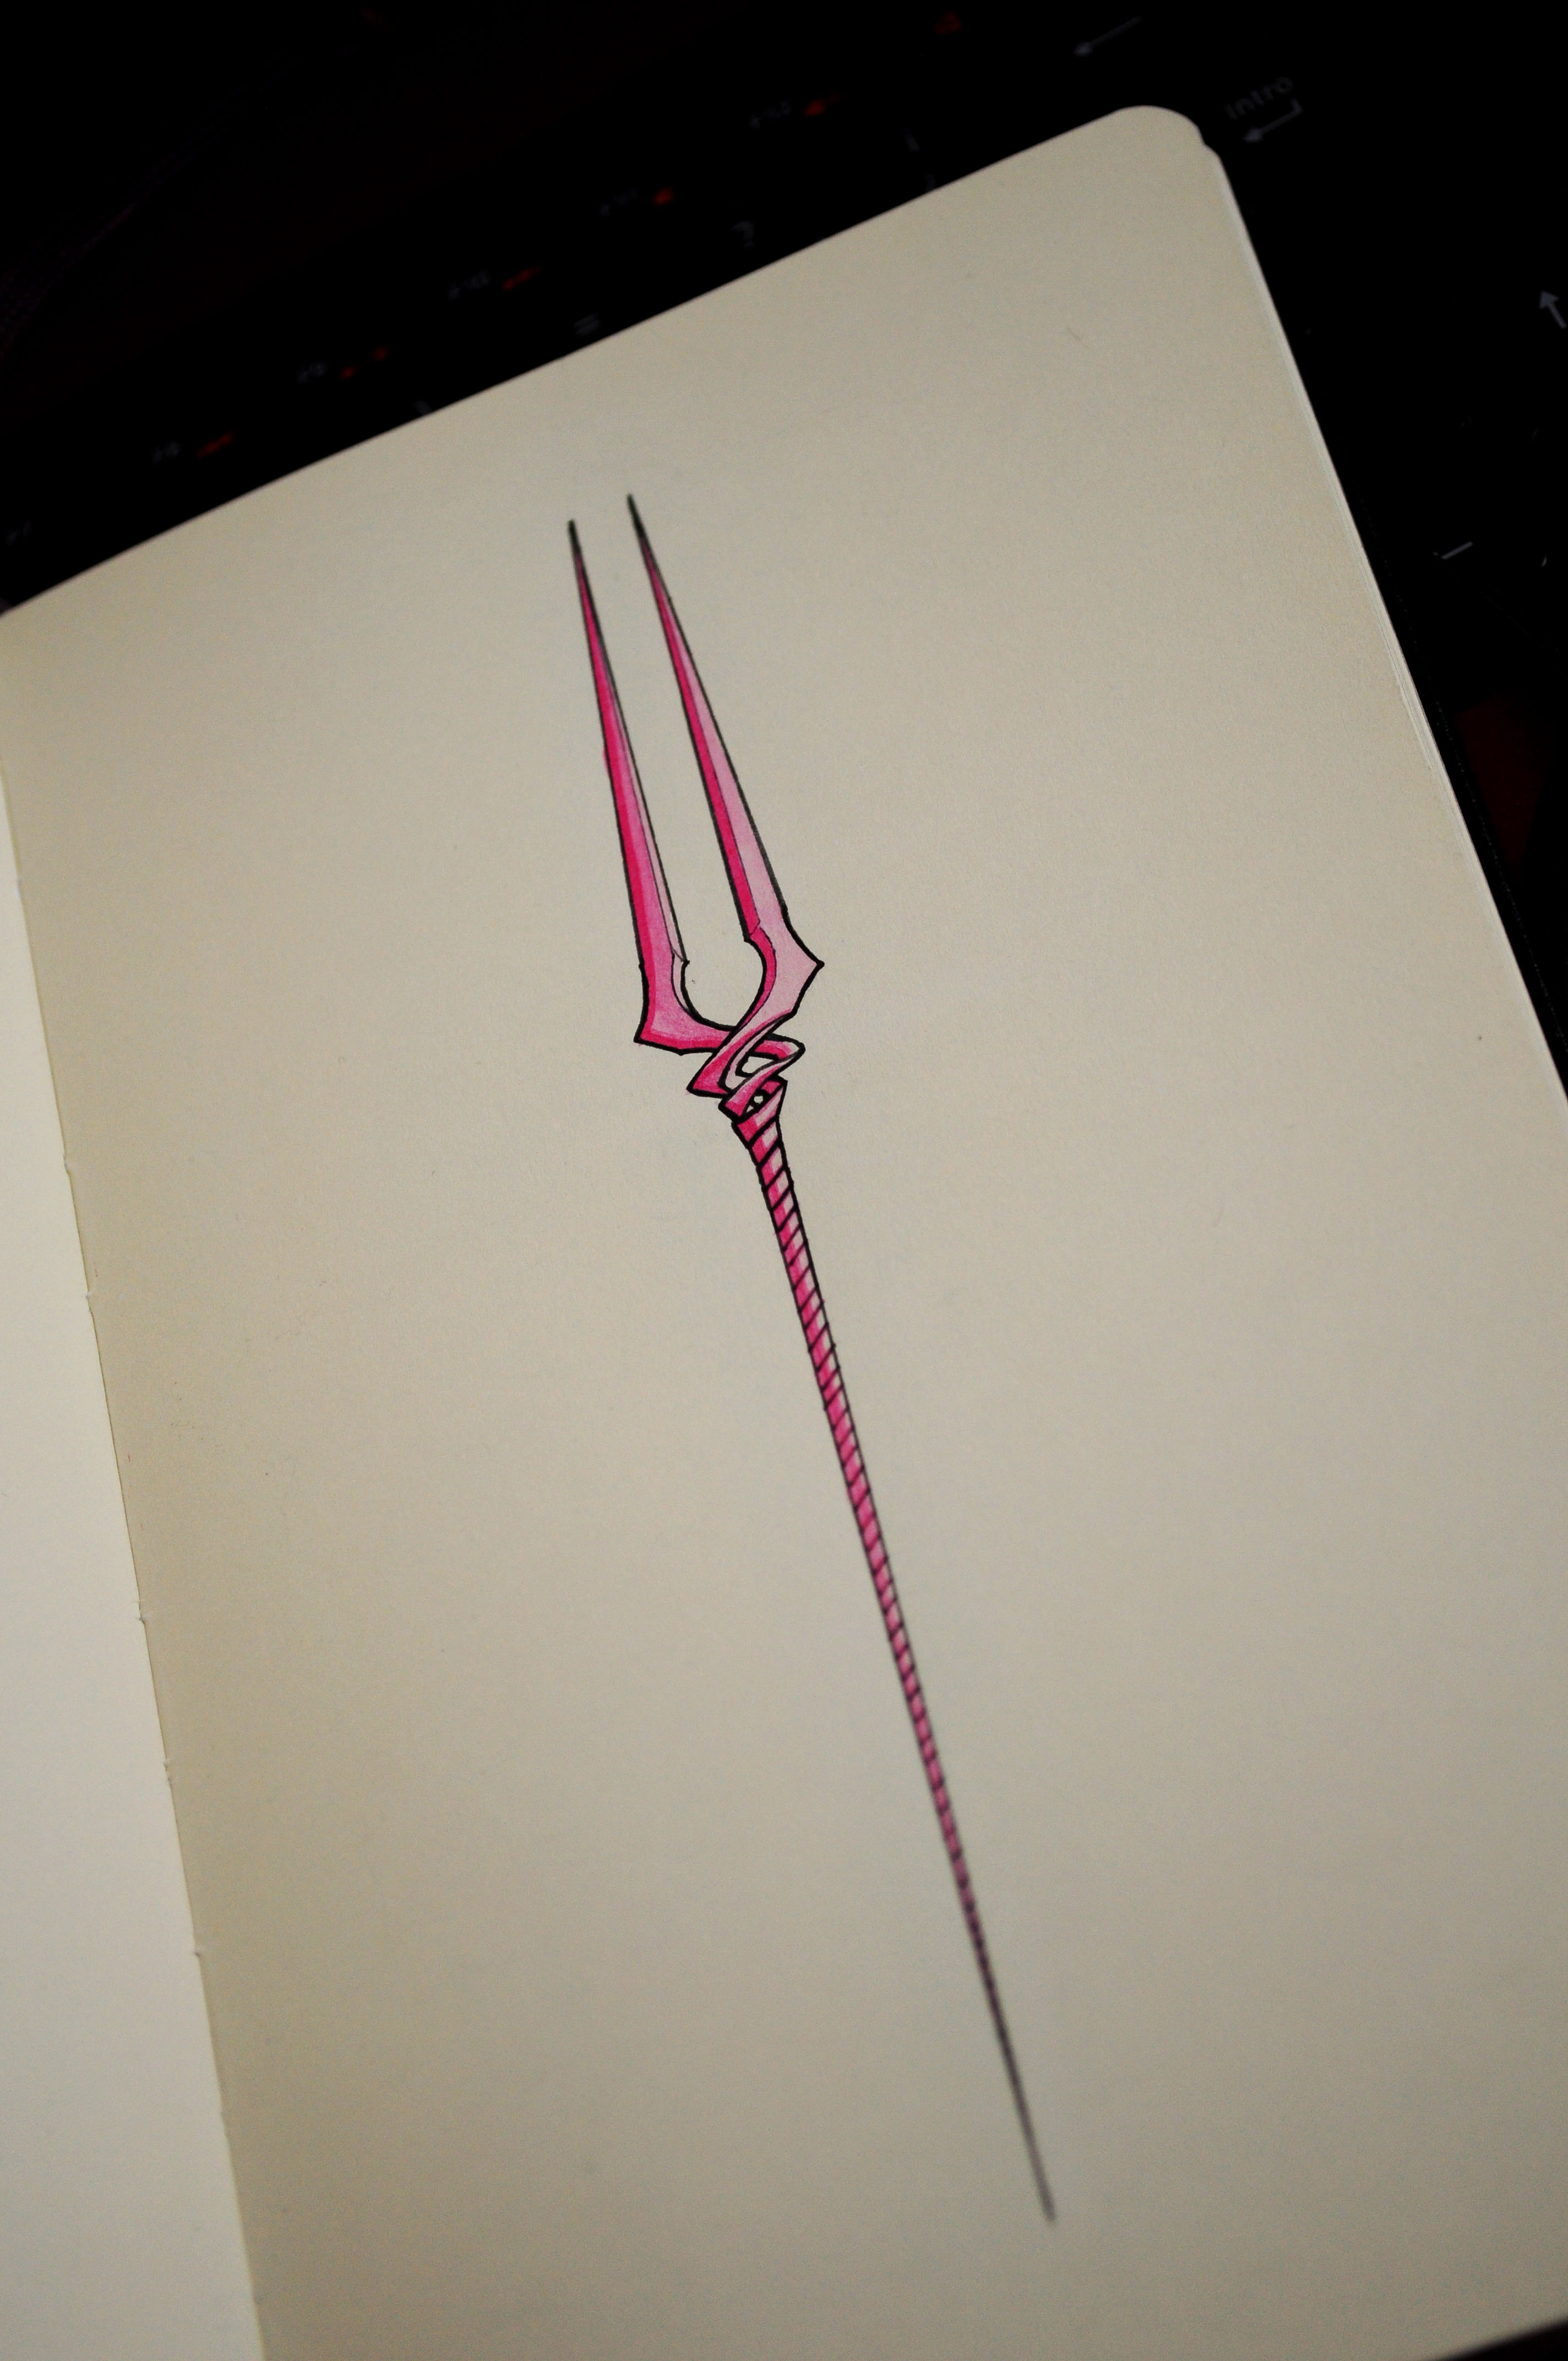 2848x4288 Spear Of Longinus (My Drawing) Evangelion